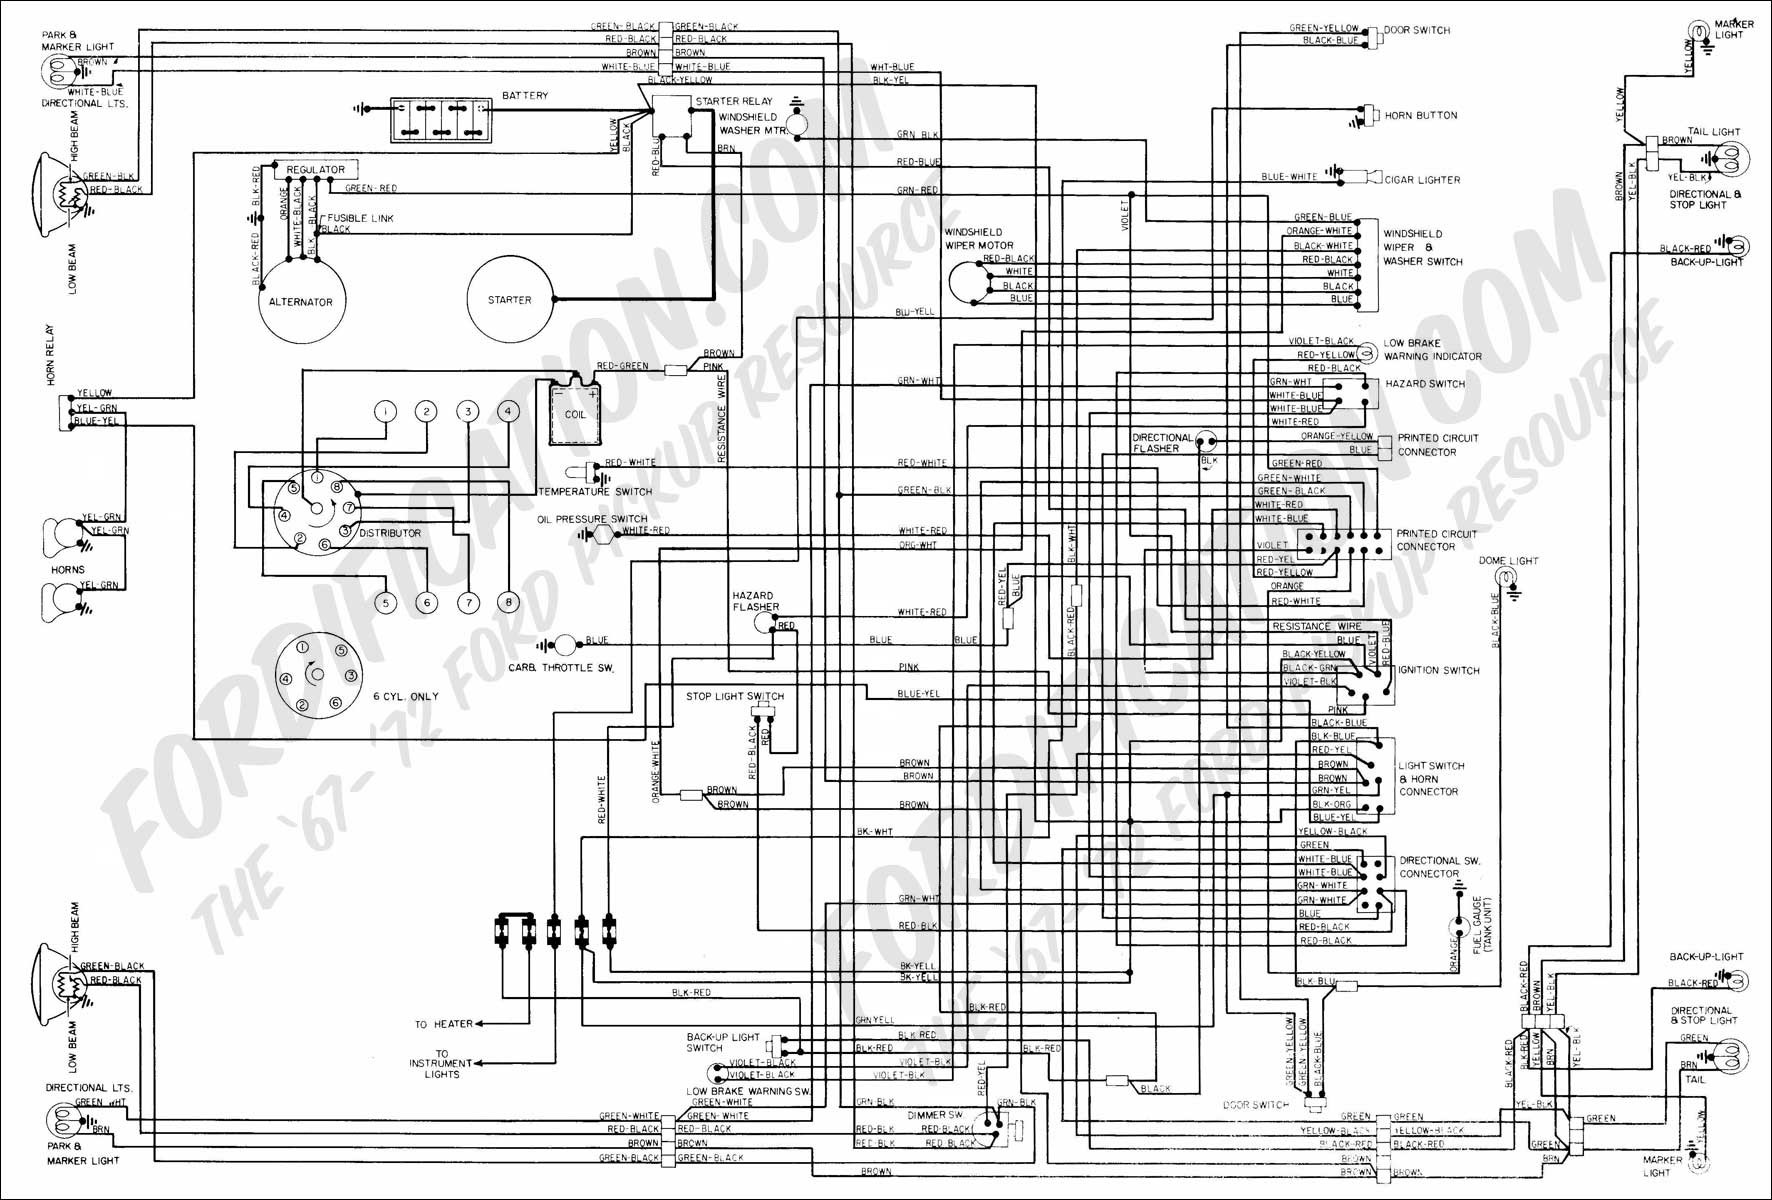 1995 ford F150 5 0 Engine Diagram ford F350 Wiring Diagram 5 Lenito Of 1995 ford F150 5 0 Engine Diagram